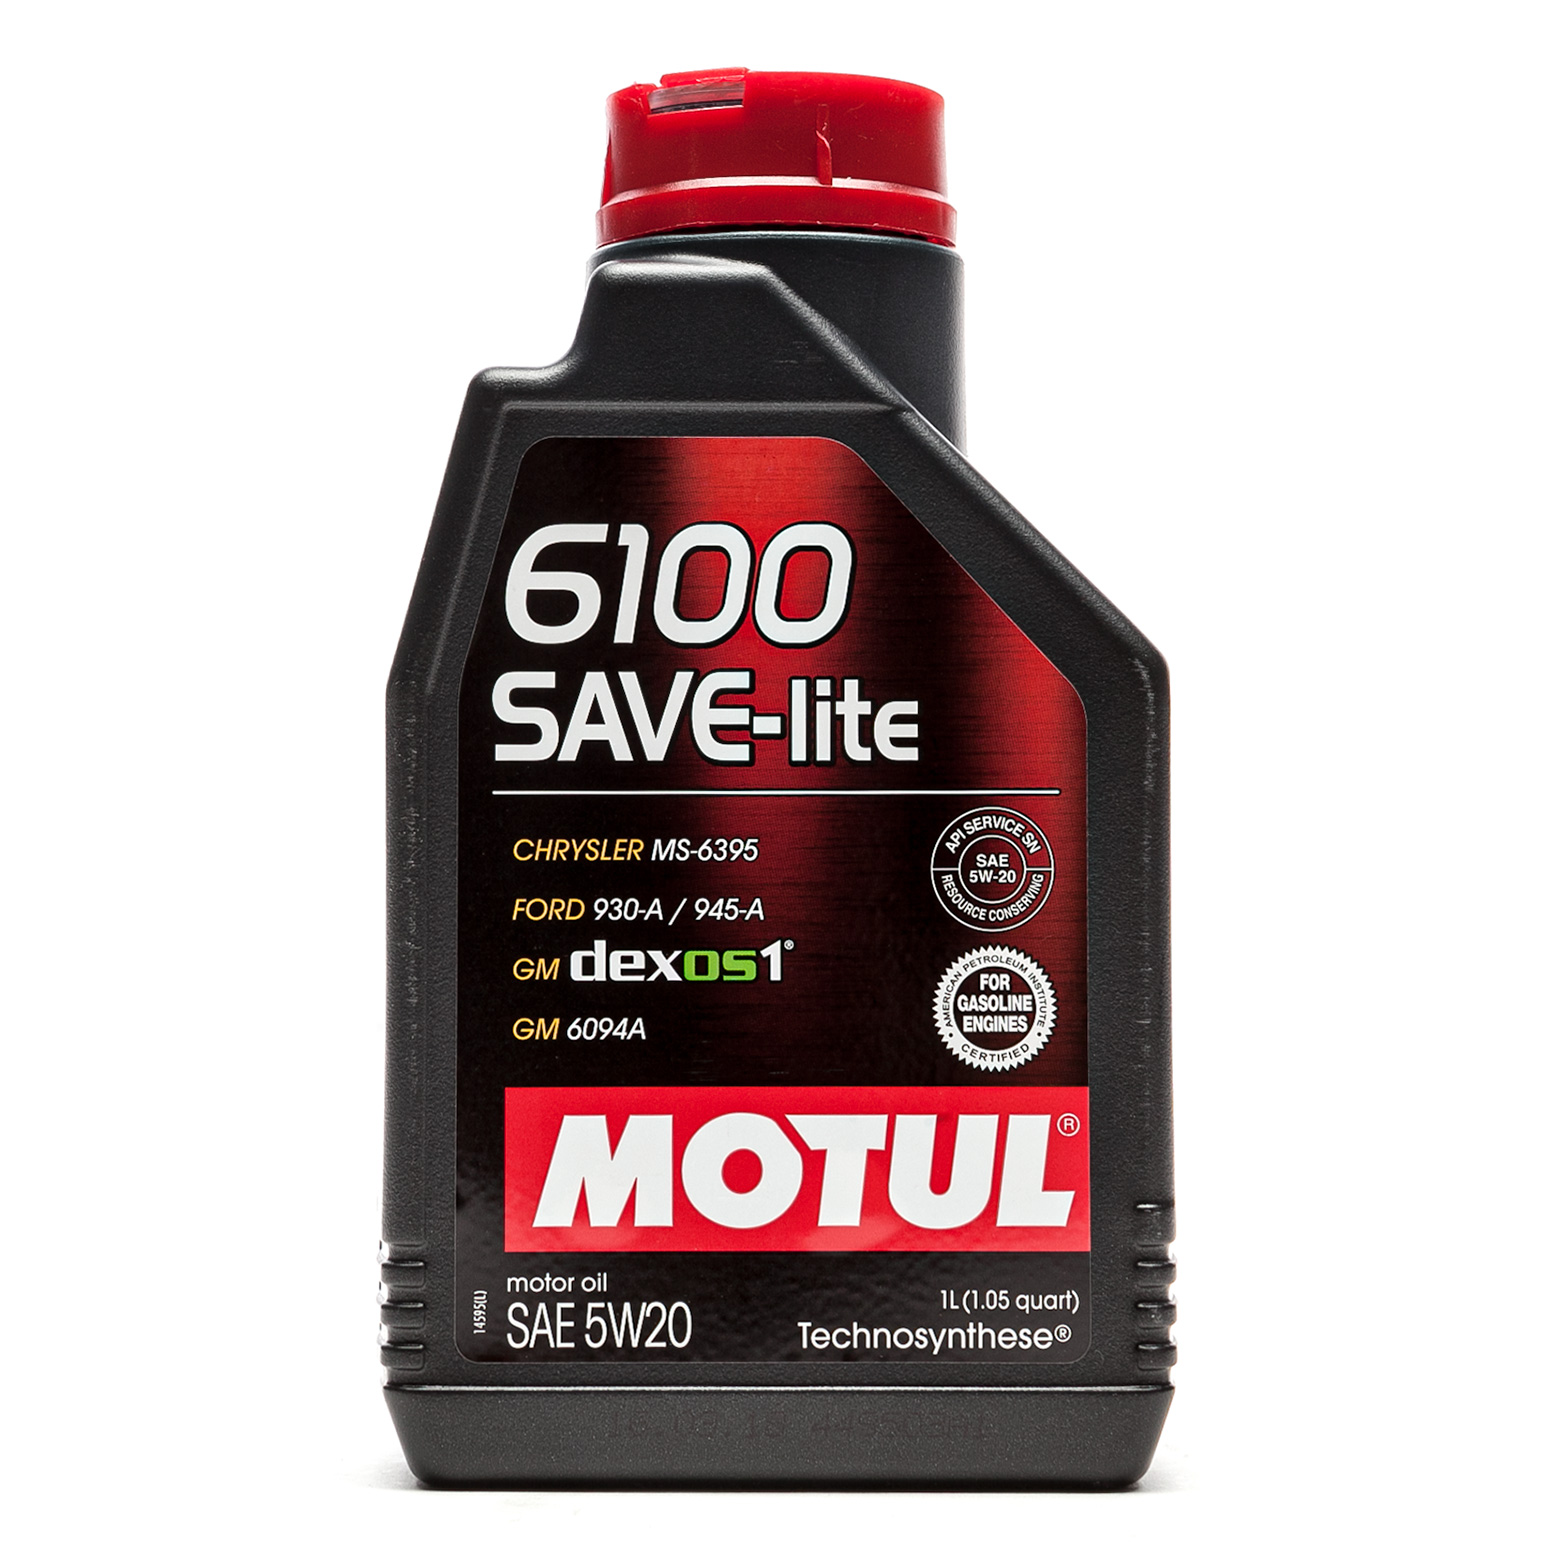 Motul 6100 SAVE-lite 5w20 1L